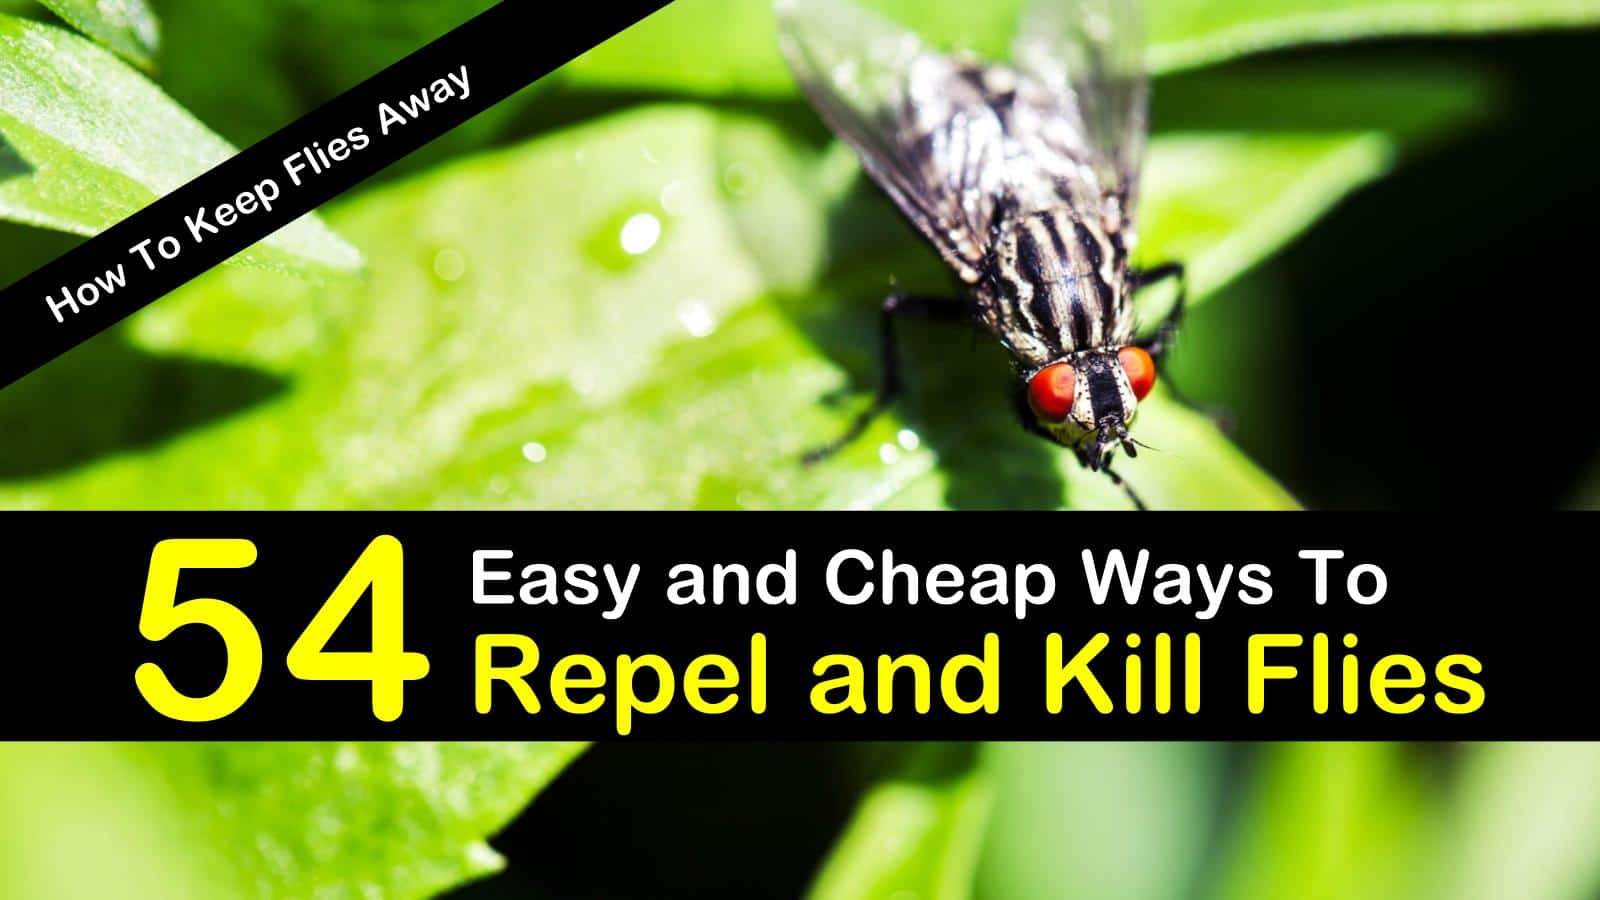 how to keep flies away titlimg